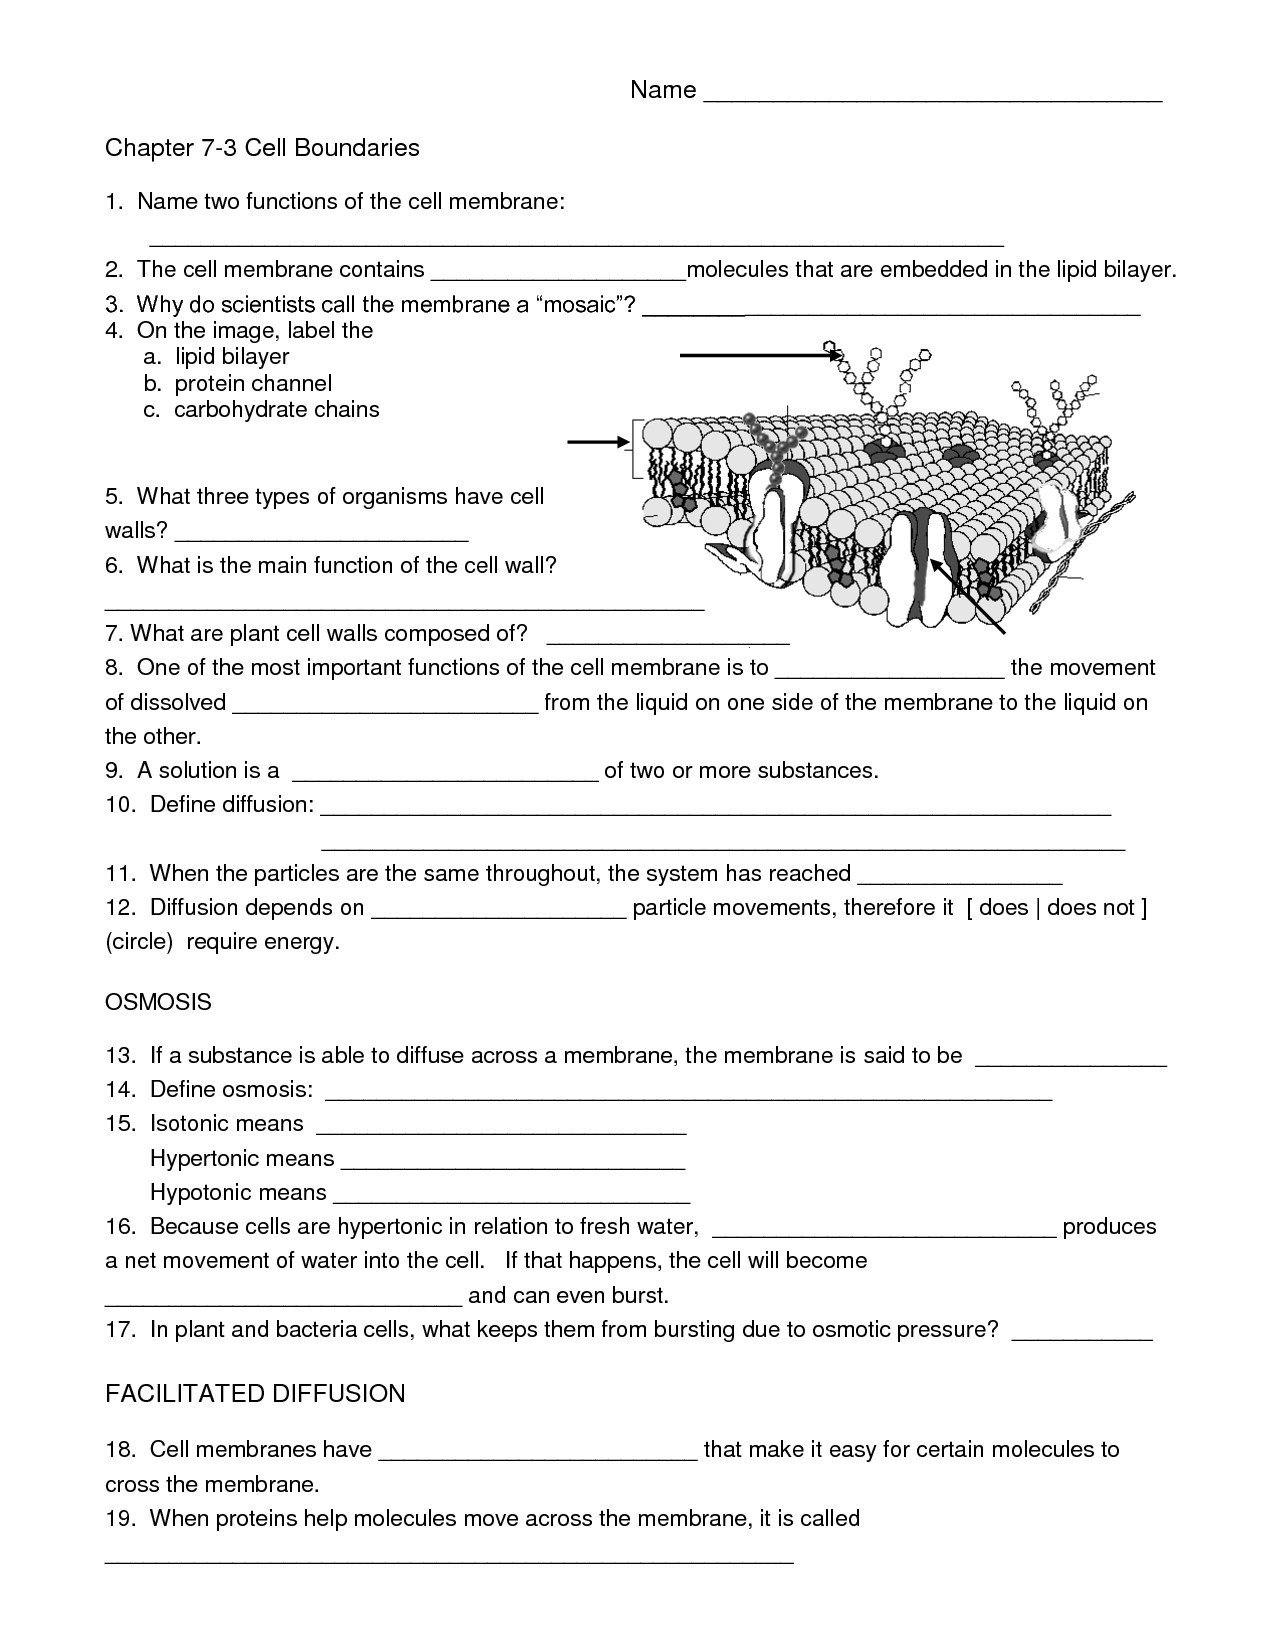 Free Printable Biology Worksheets Free Biology Worksheets for High School Printable and